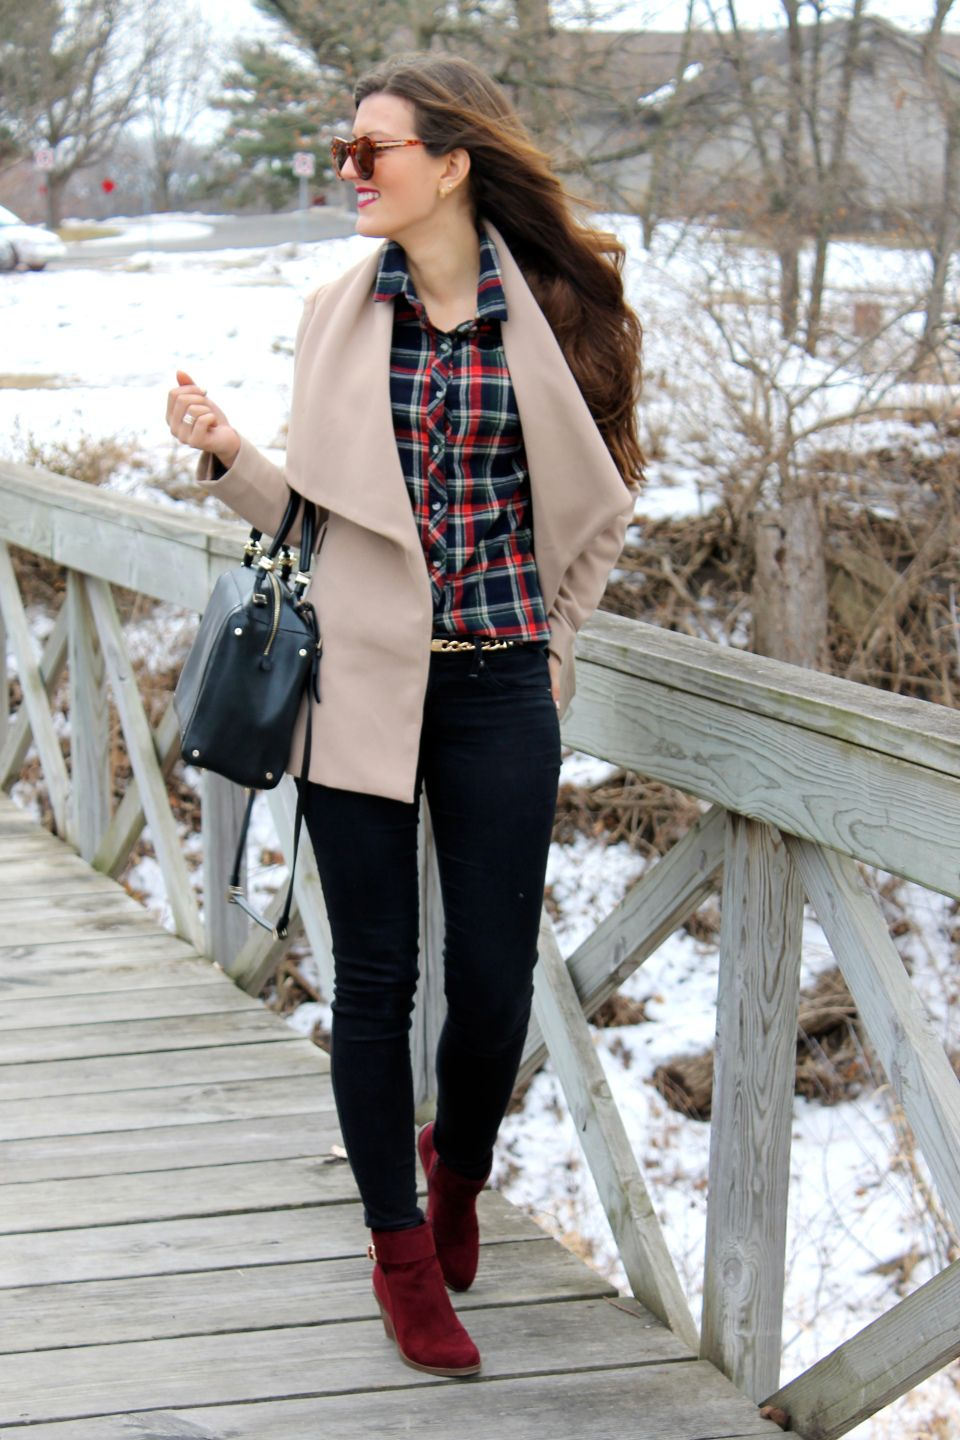 Perfect casual-chic outfit